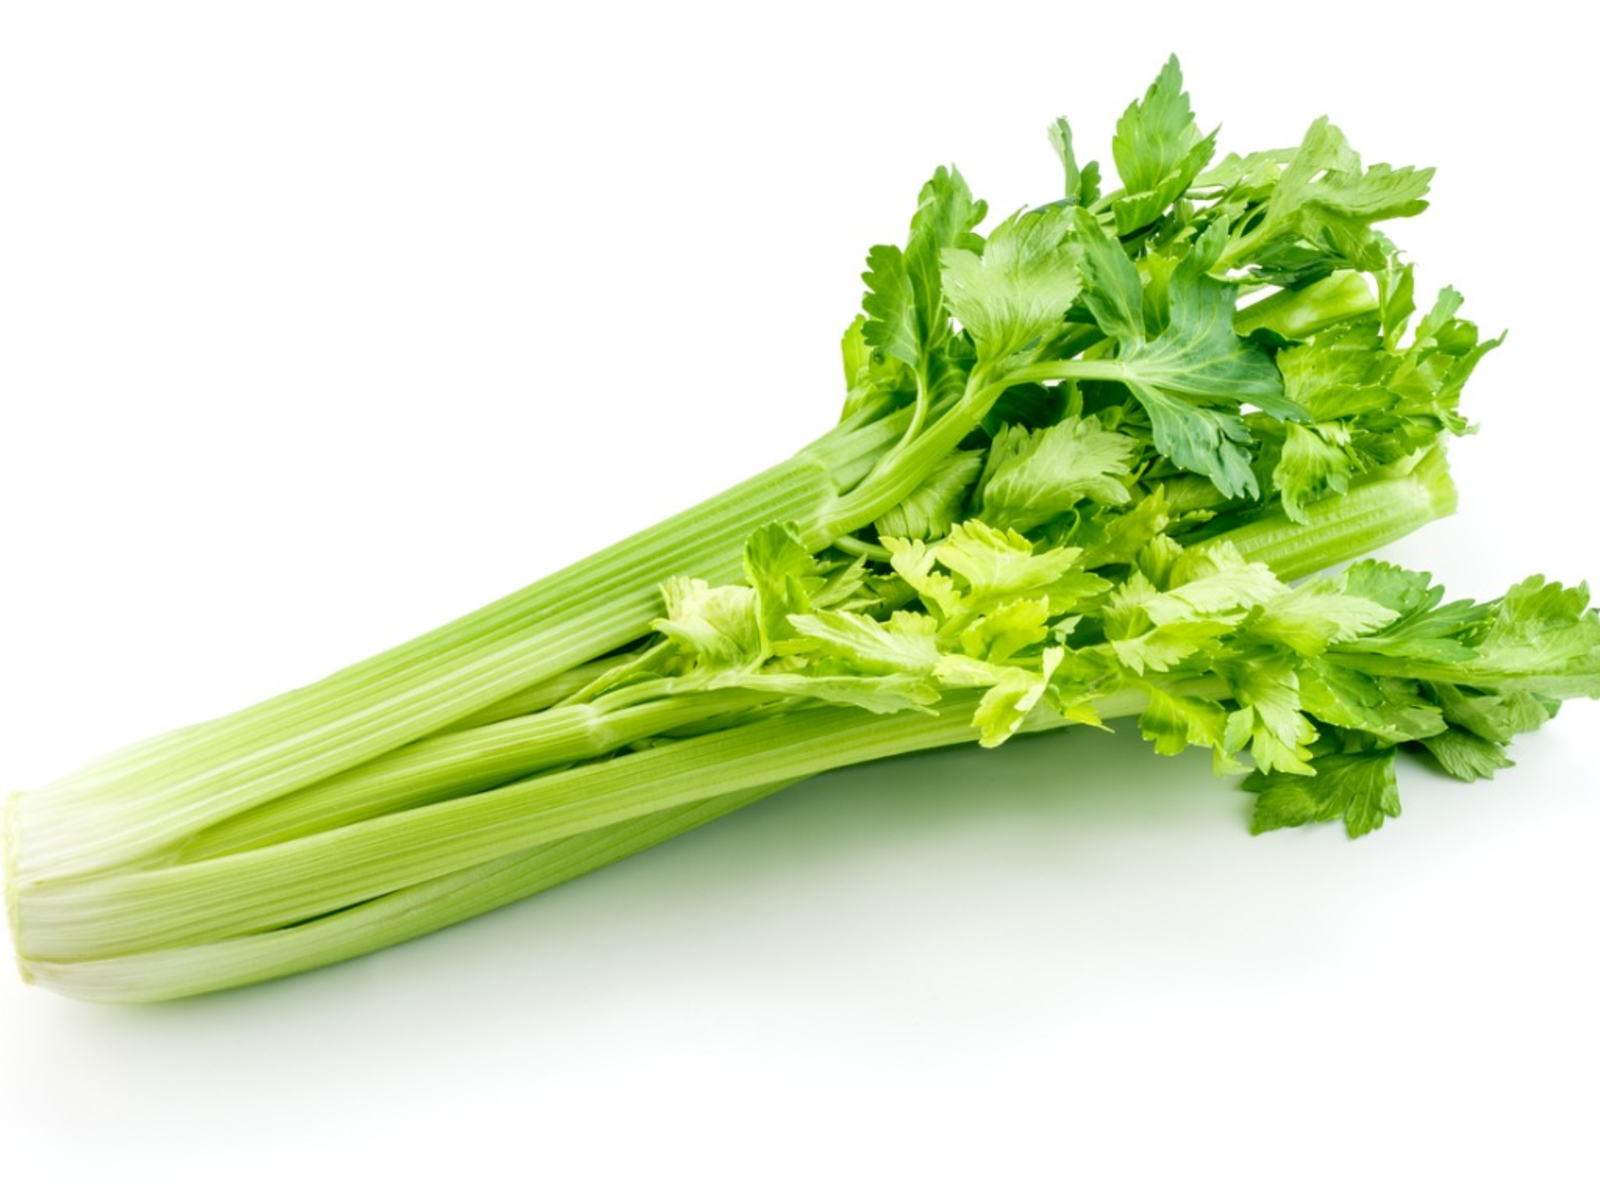 Celery to Fight the Summer Heat